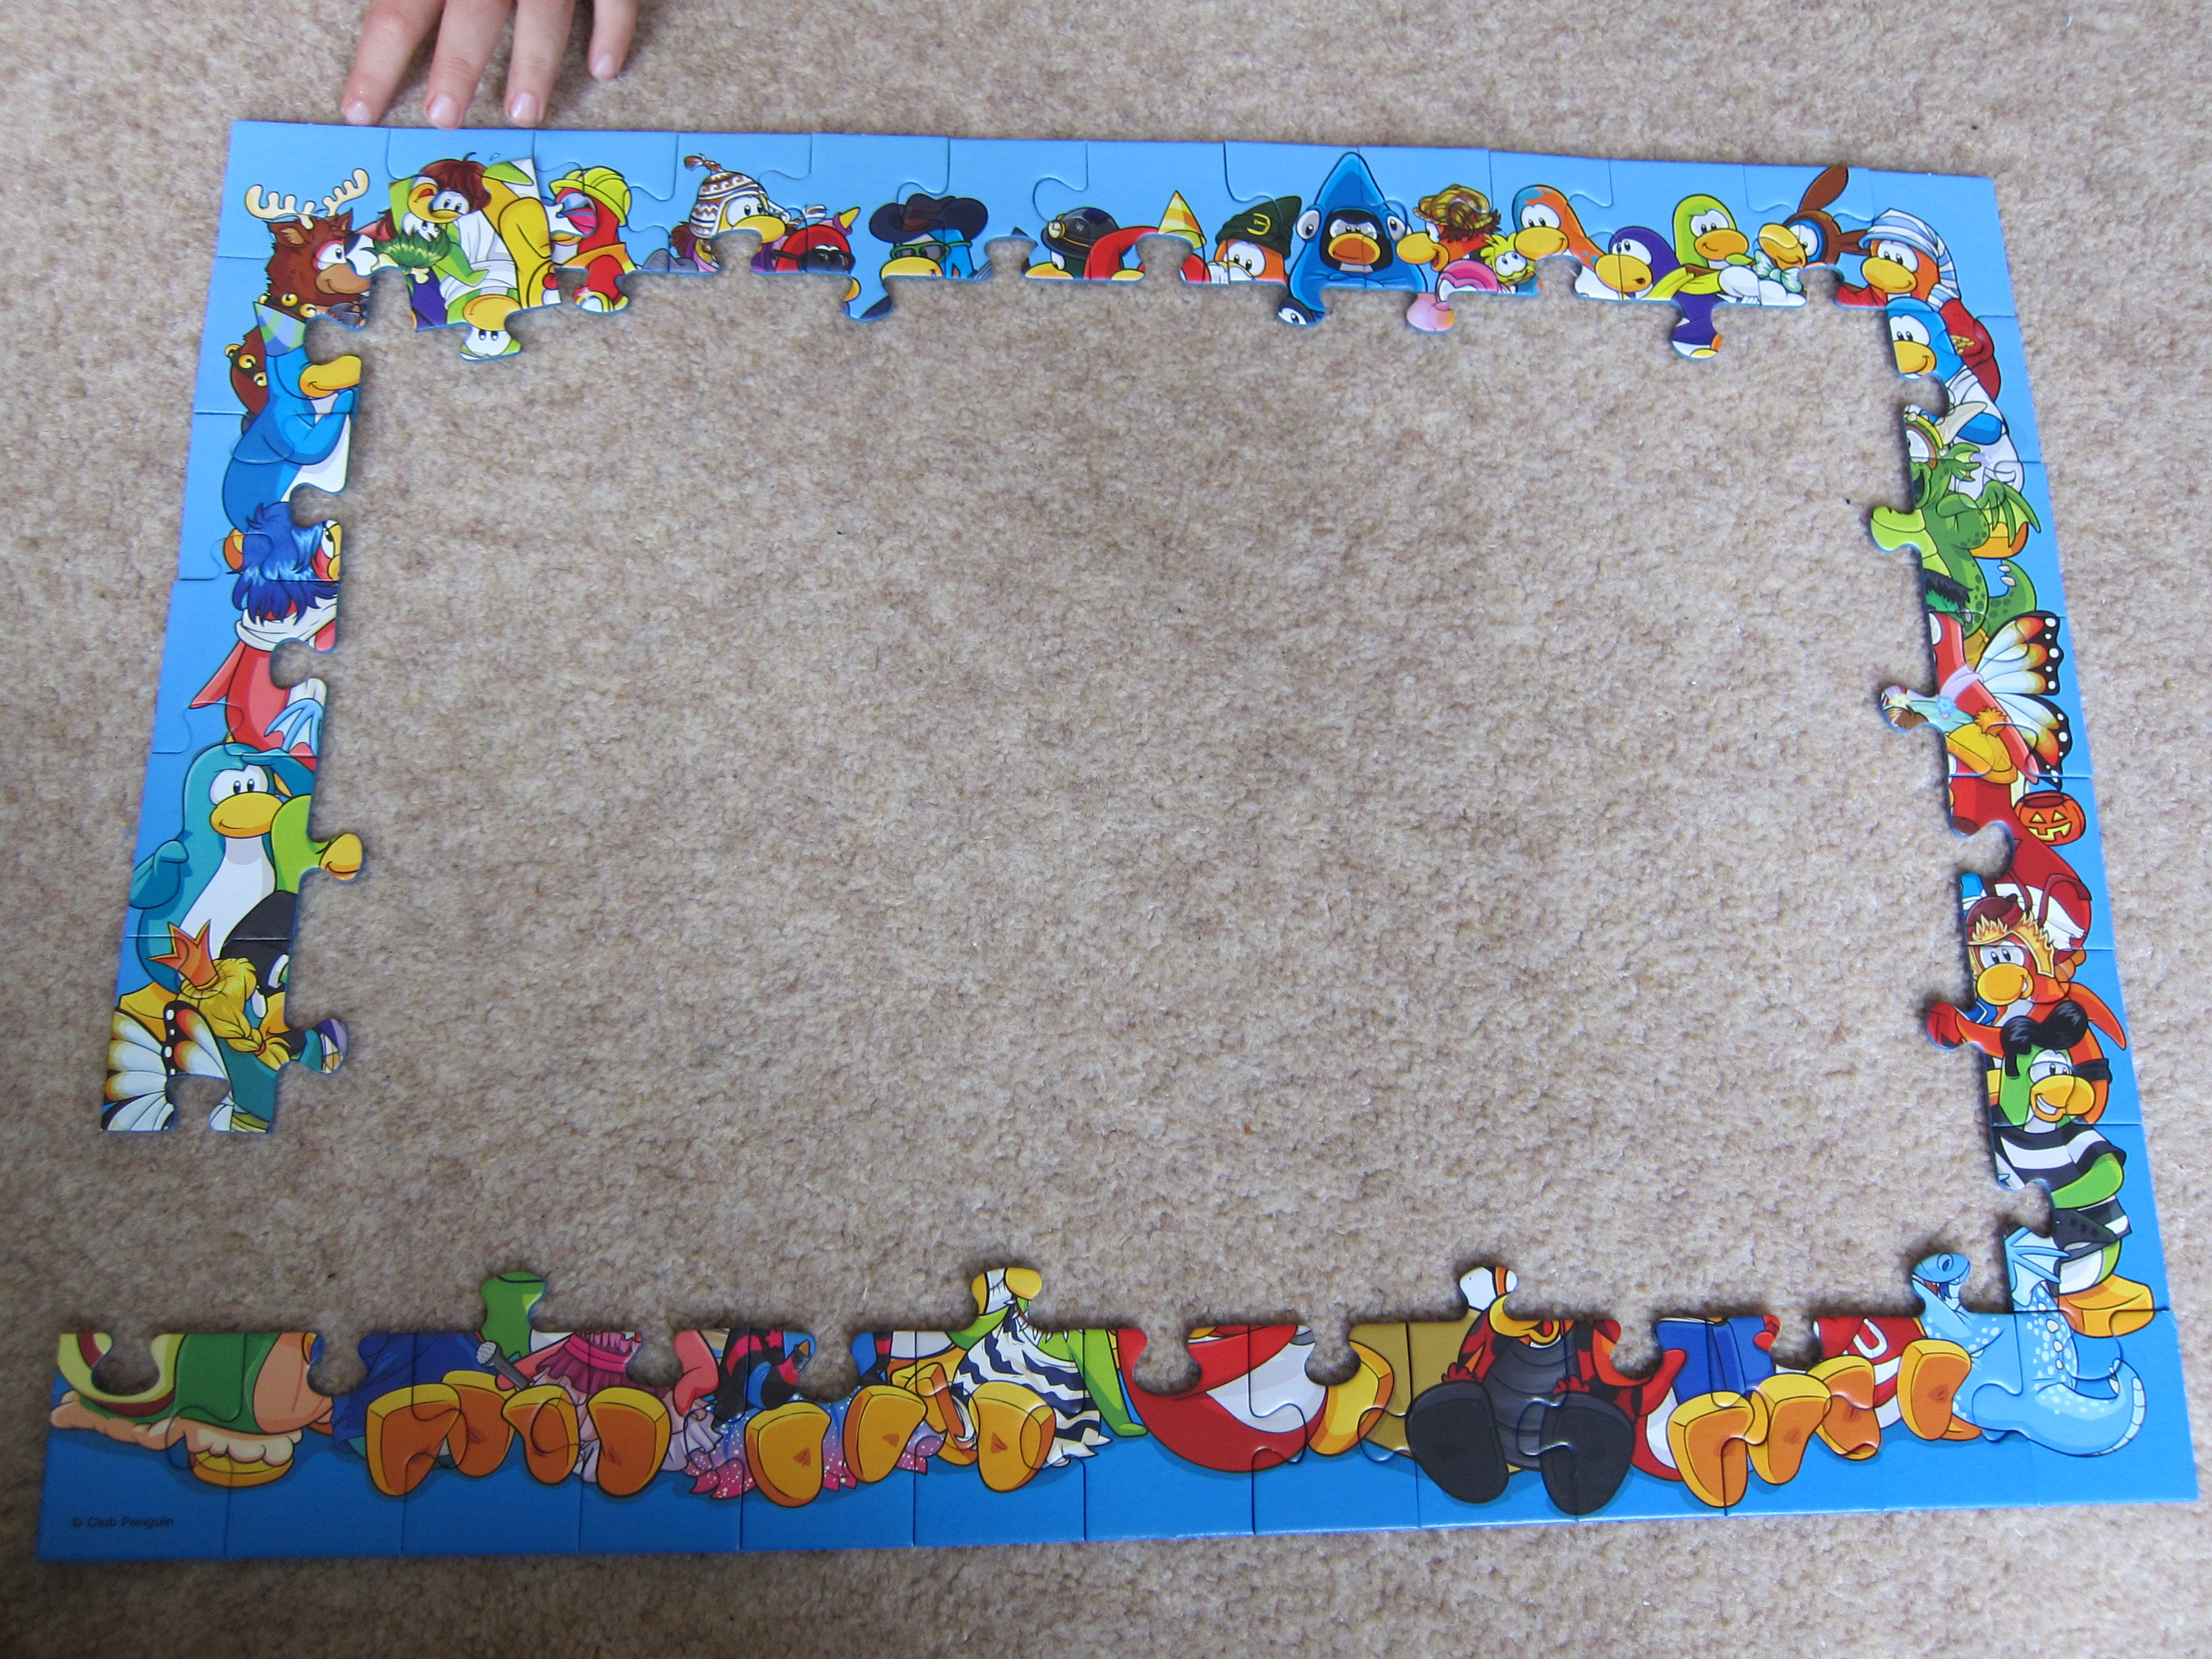 Ravensburger Club Penguin 100 piece jigsaw review | Blog by Baby